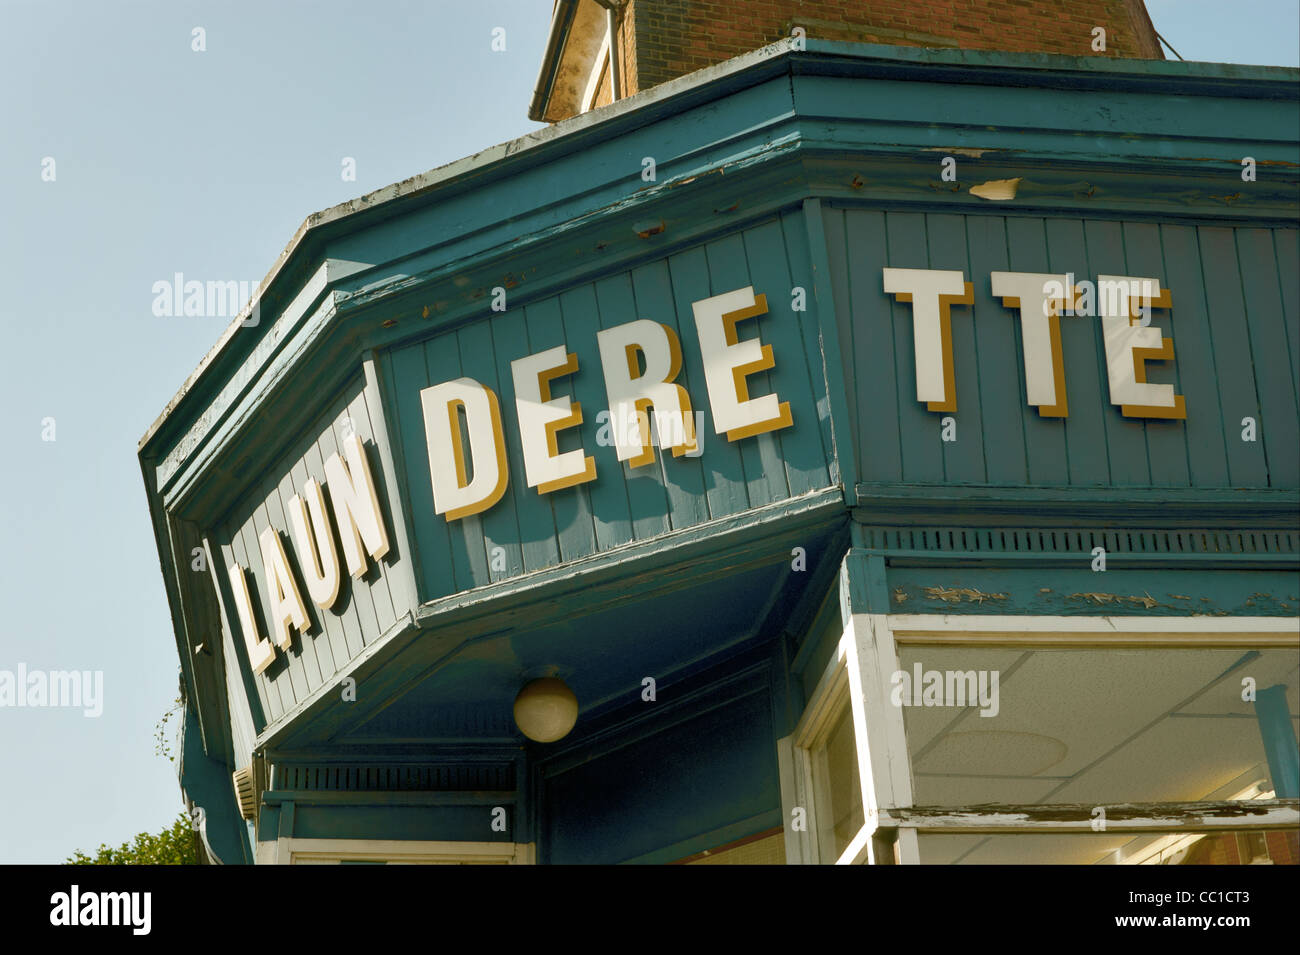 Close up of the sign over the launderette. - Stock Image